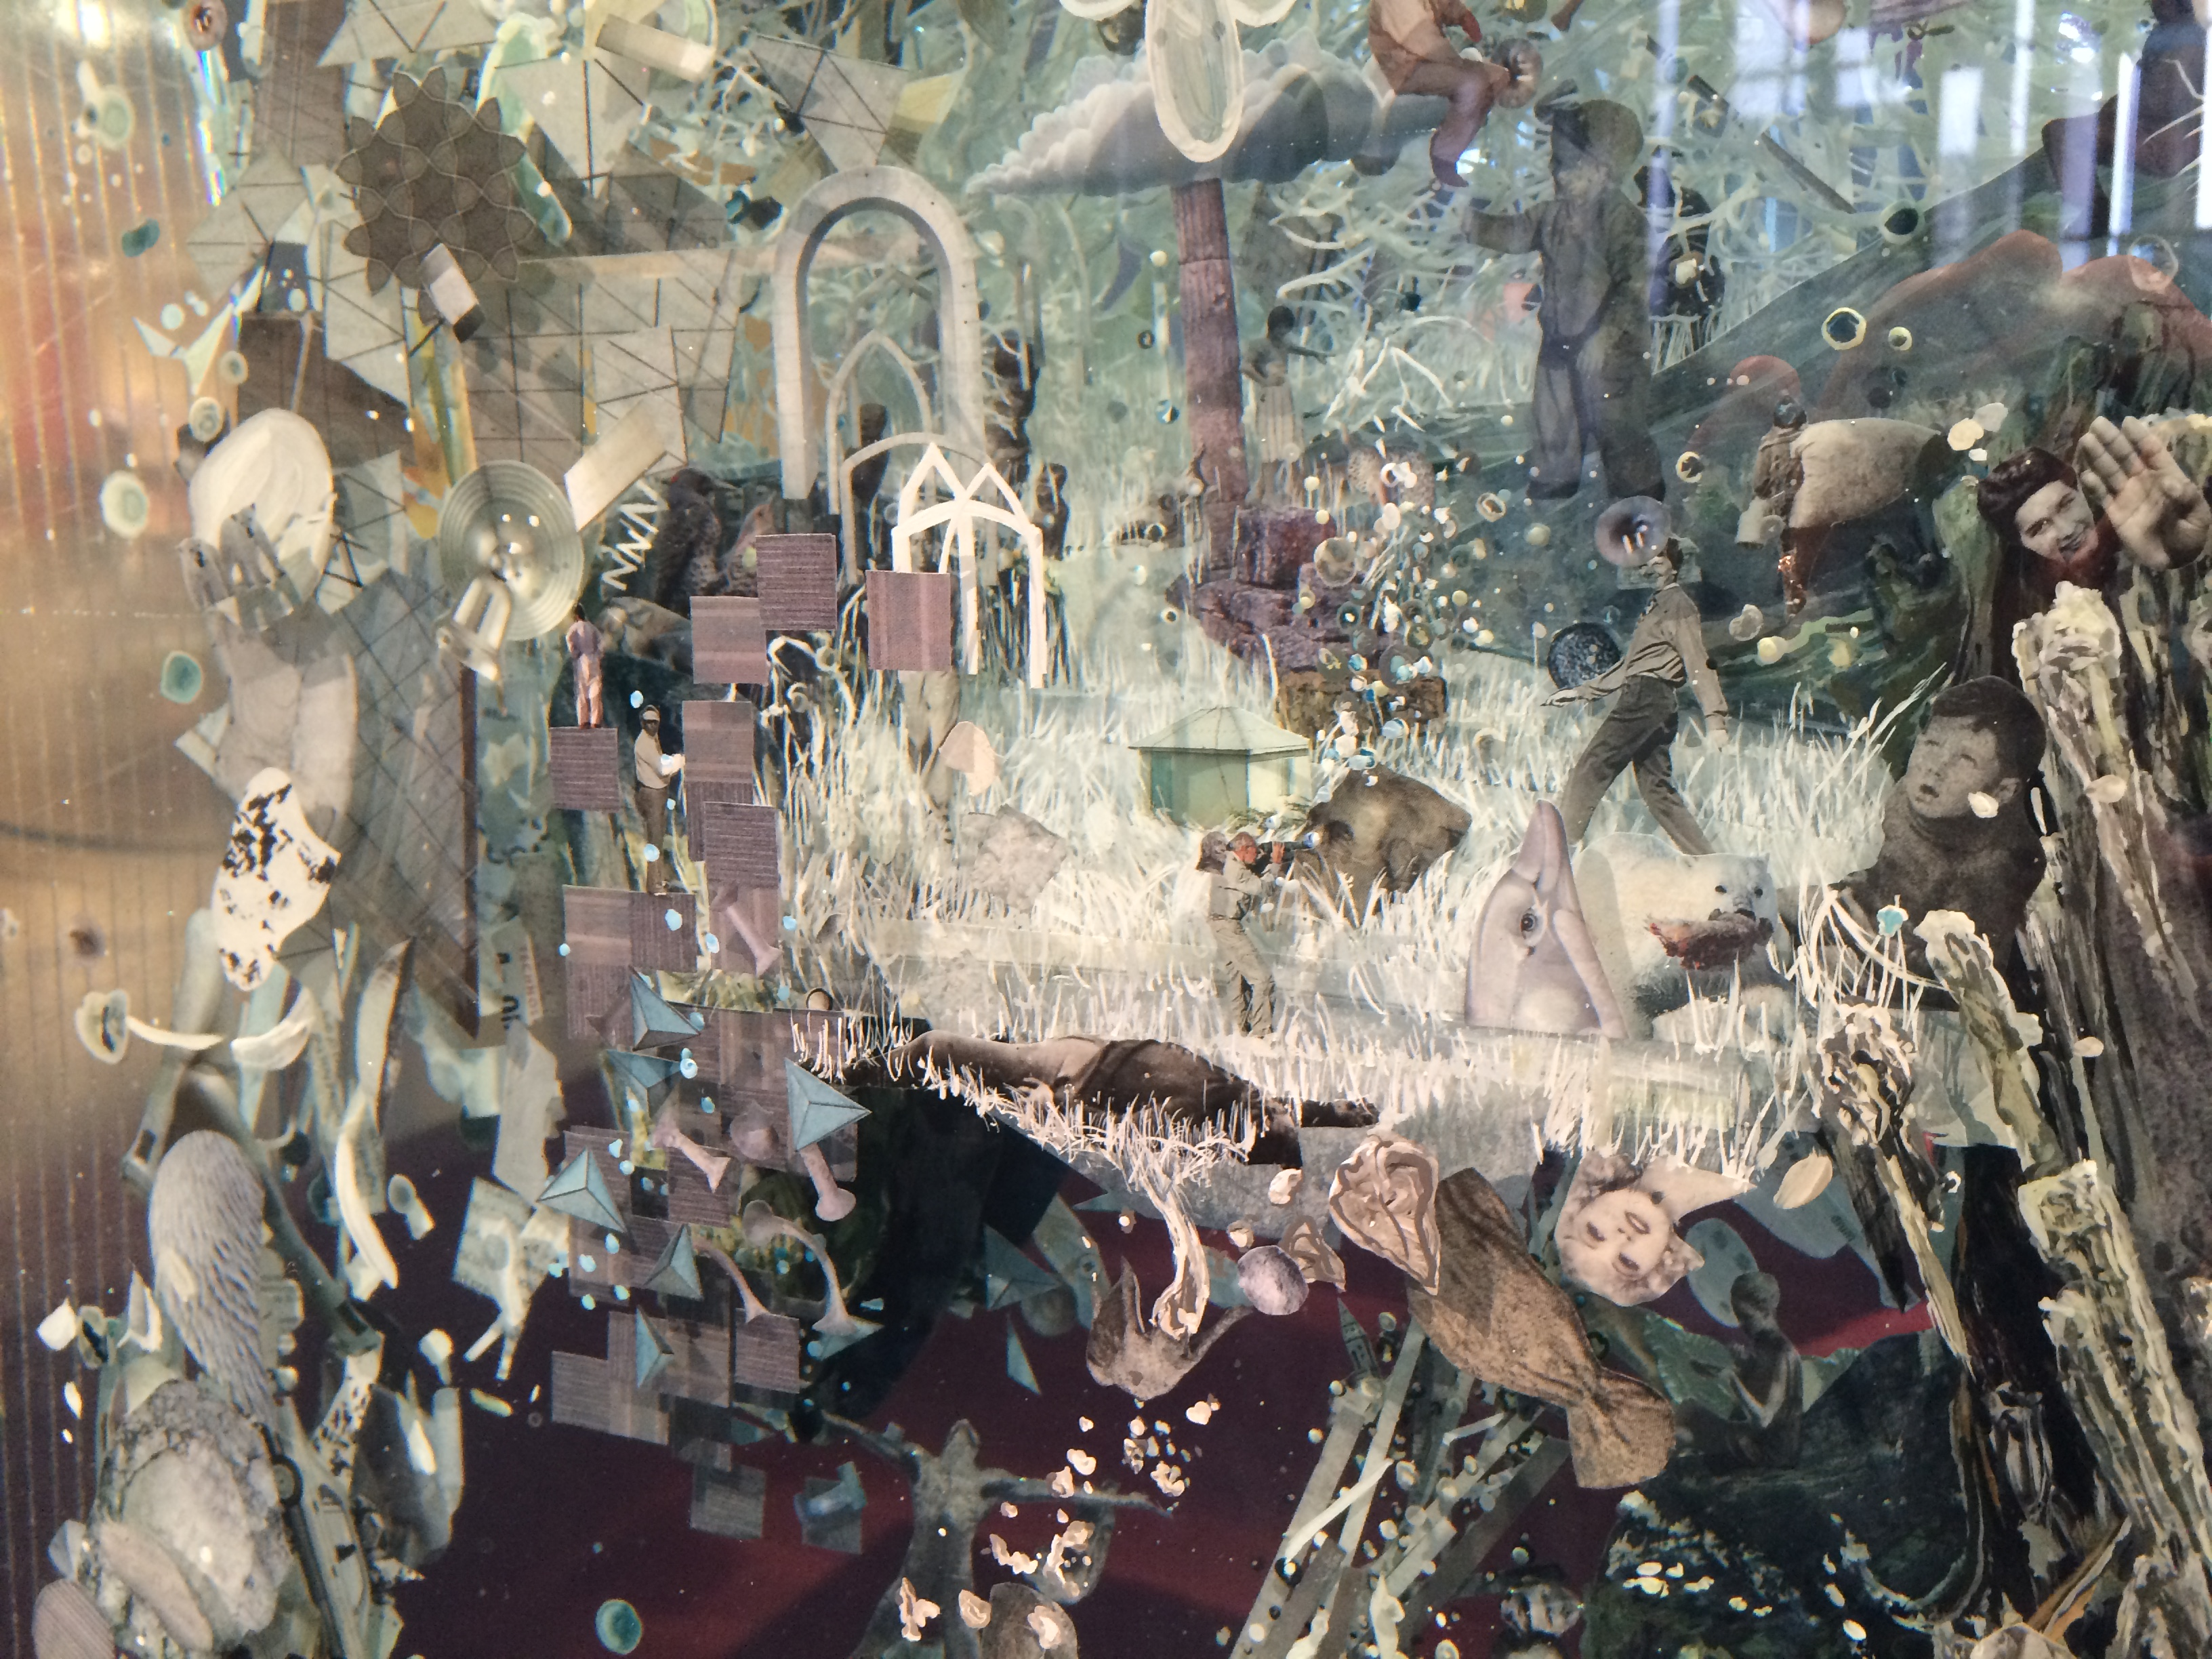 Psychogeographies by Dustin Yellin at Kennedy Center